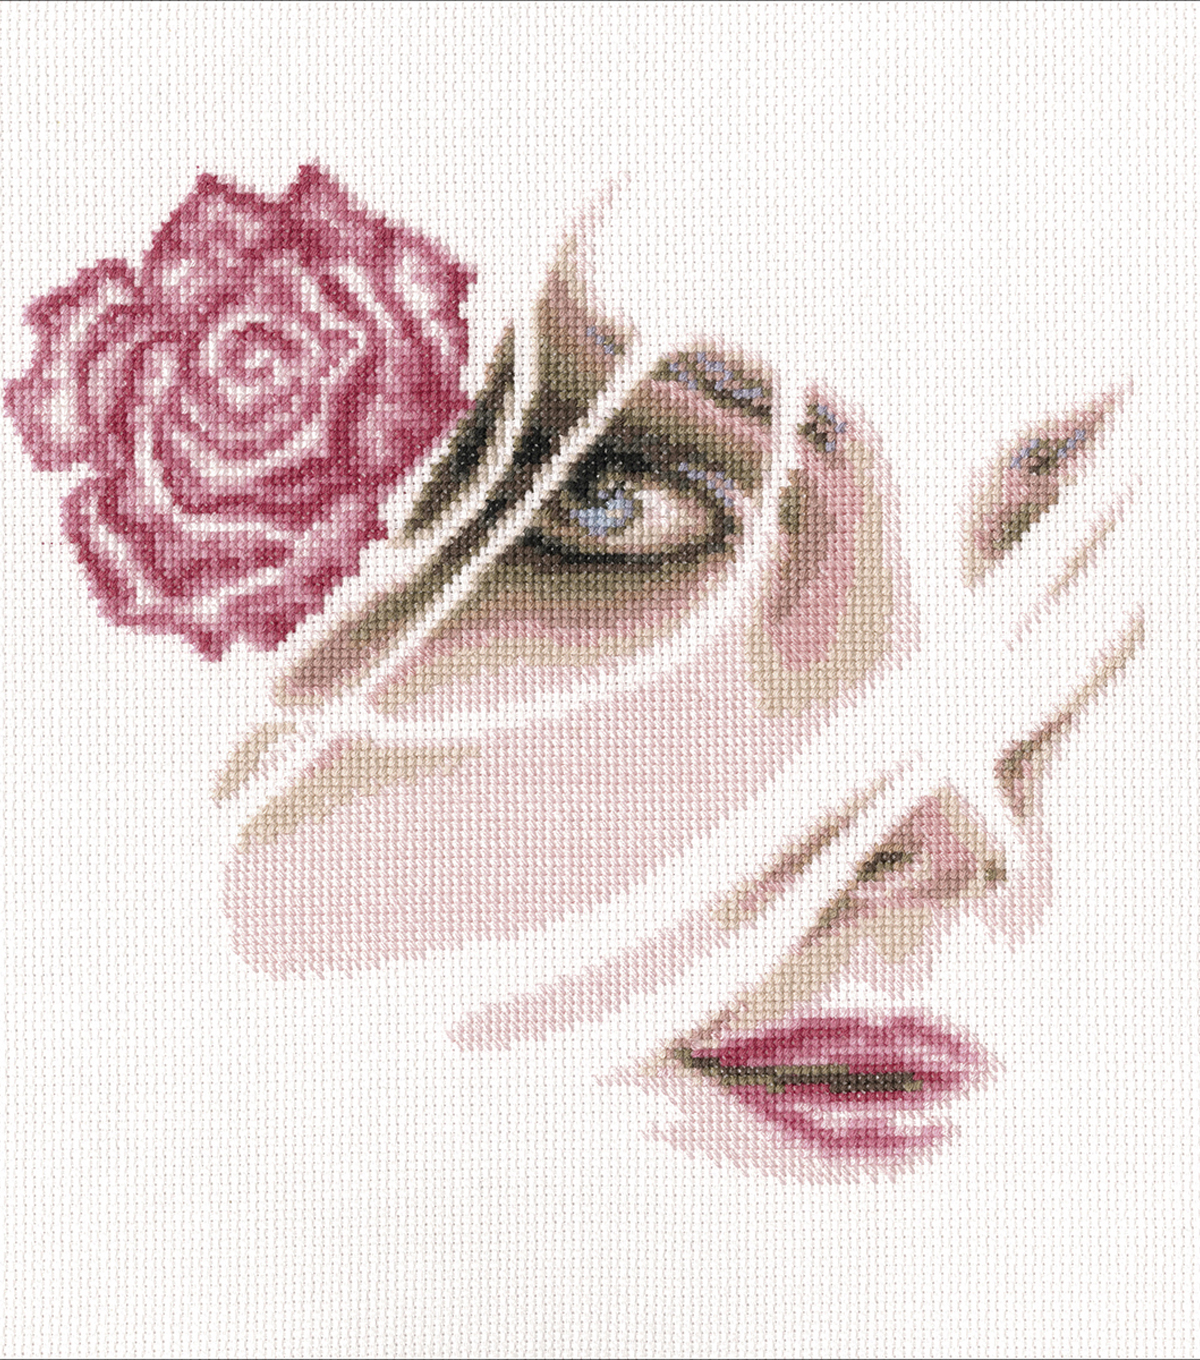 Coral Rose Counted Cross Stitch Kit 14 Count